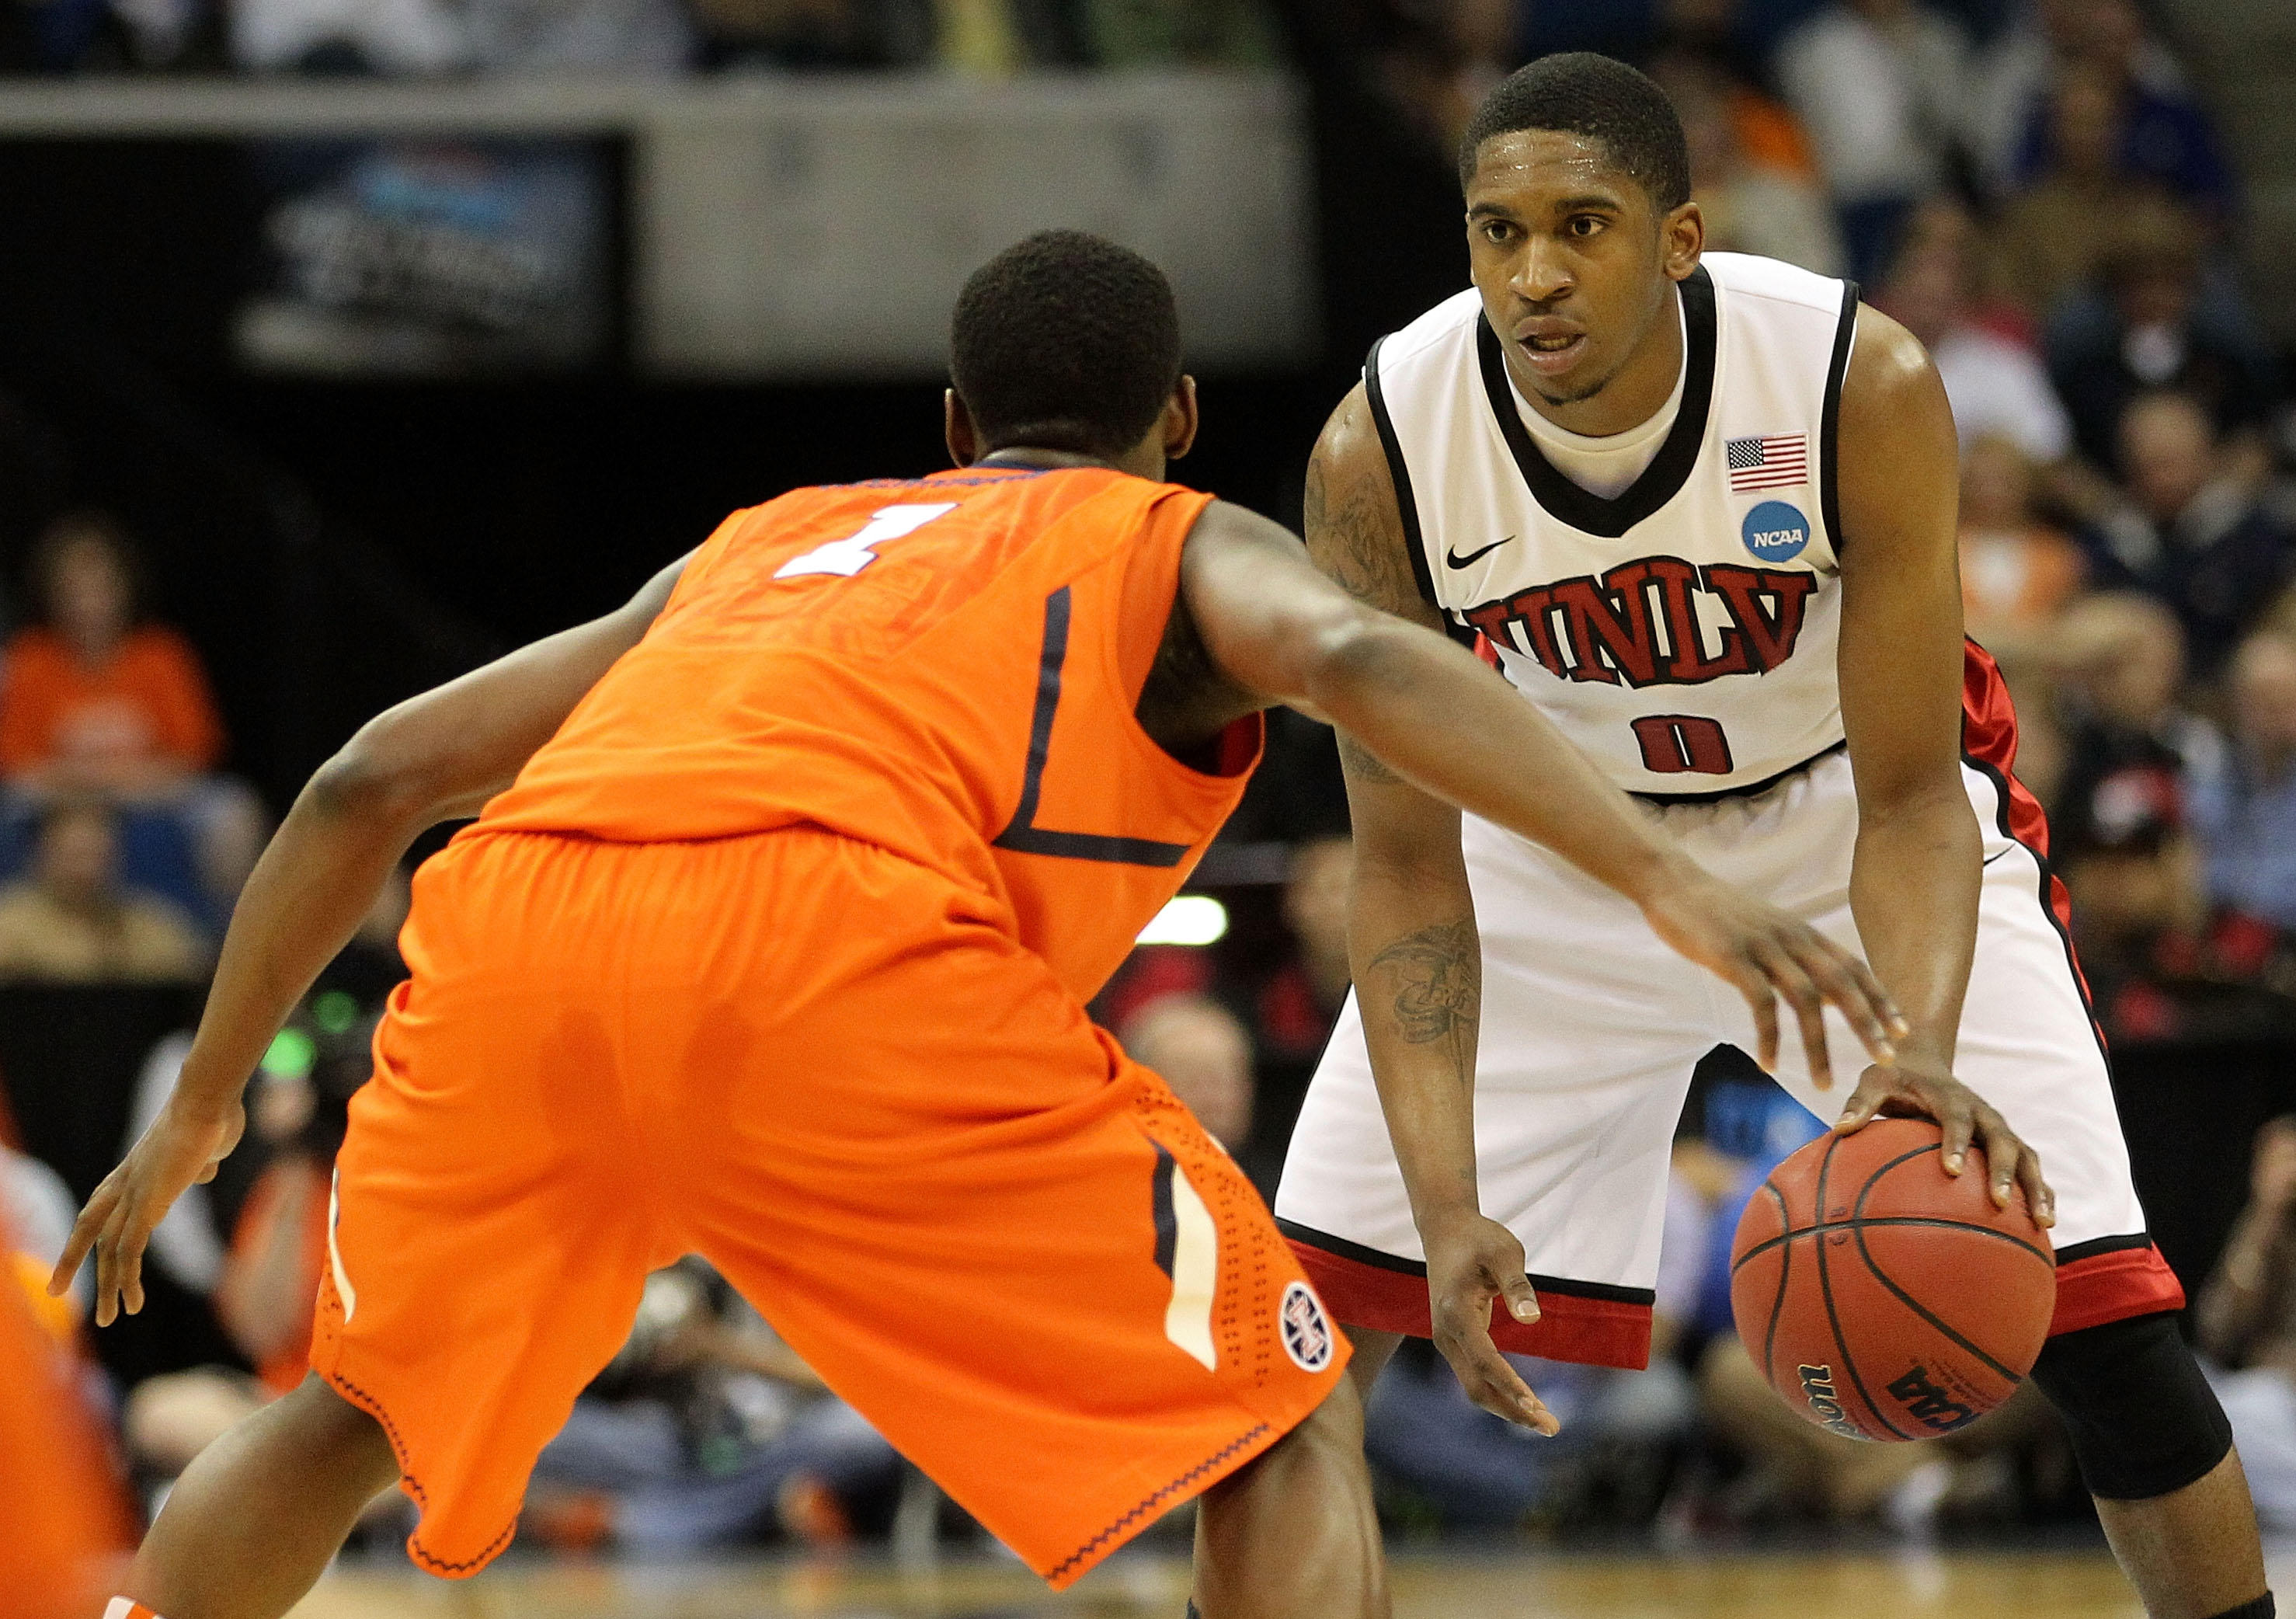 TULSA, OK - MARCH 18:  Oscar Bellfield #0 of the UNLV Rebels looks to move the ball as D.J. Richardson #1 of the Illinois Fighting Illini defends during the second round of the 2011 NCAA men's basketball tournament at BOK Center on March 18, 2011 in Tulsa